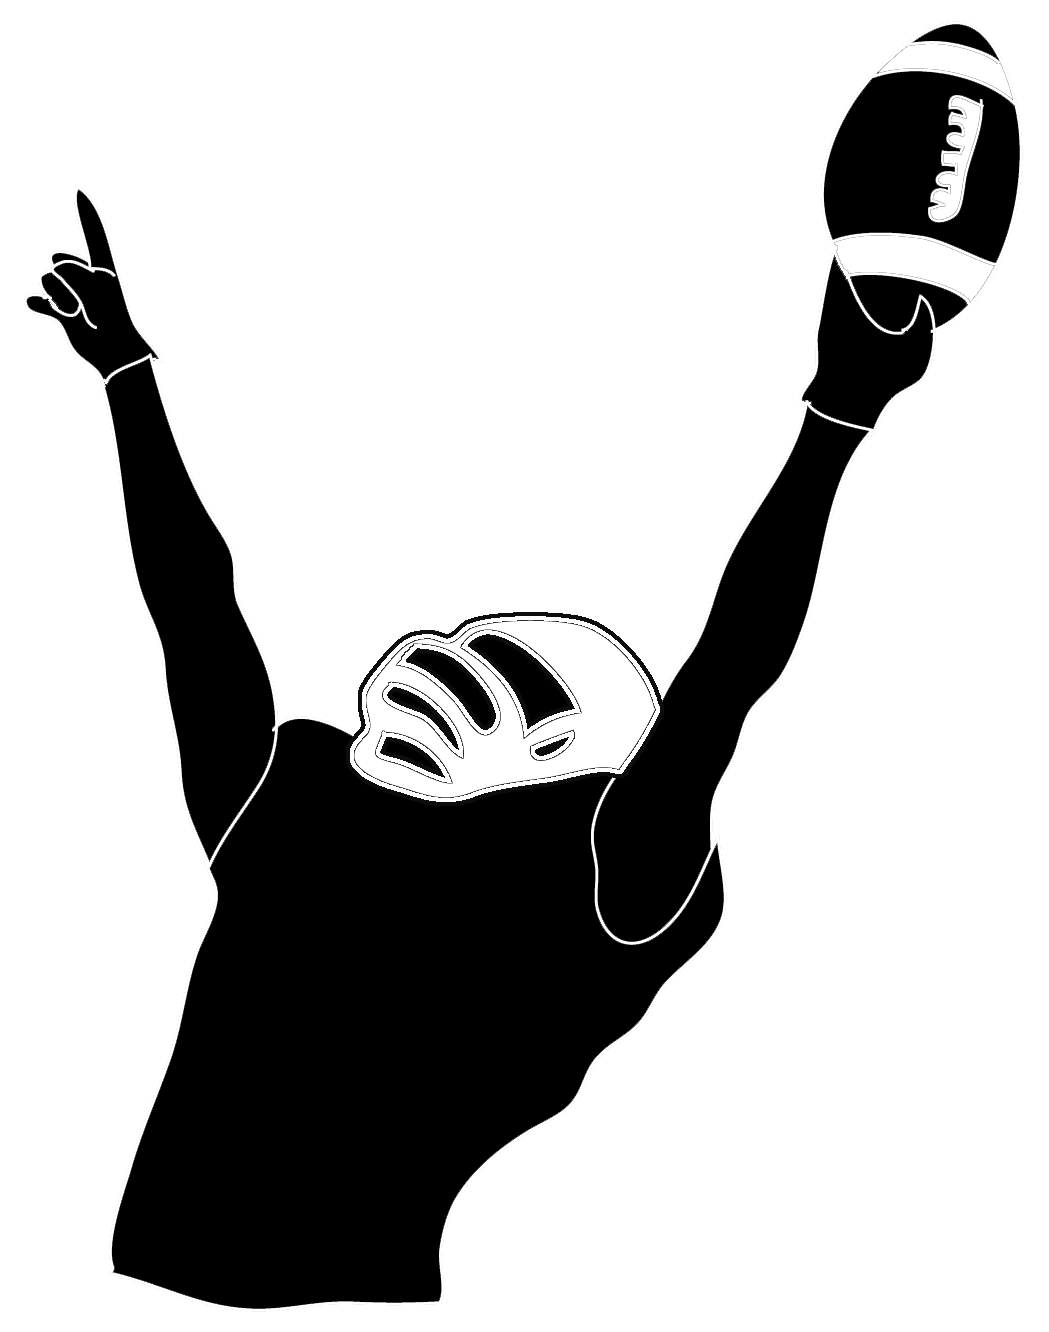 victory football player [ 1049 x 1332 Pixel ]